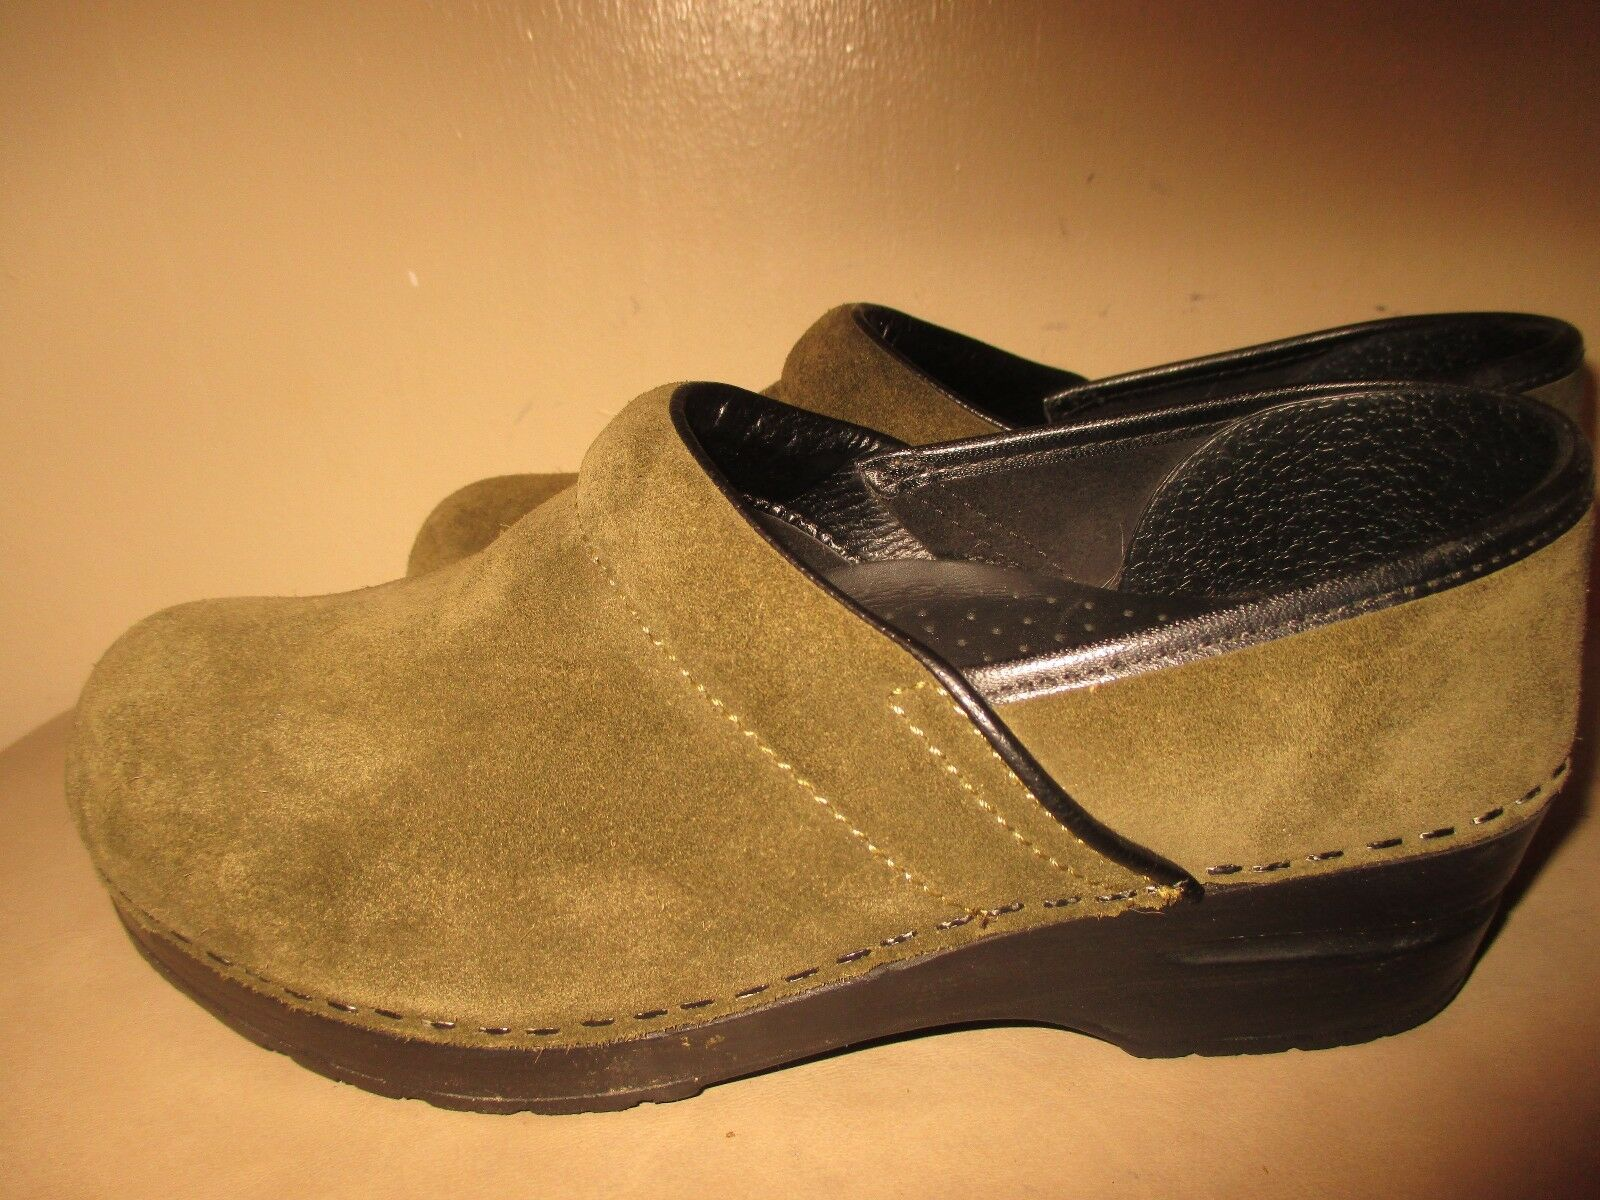 DANSKO EUR 36 US 5.5-6 M  Green Suede Leather Stapled Professional Clogs shoes